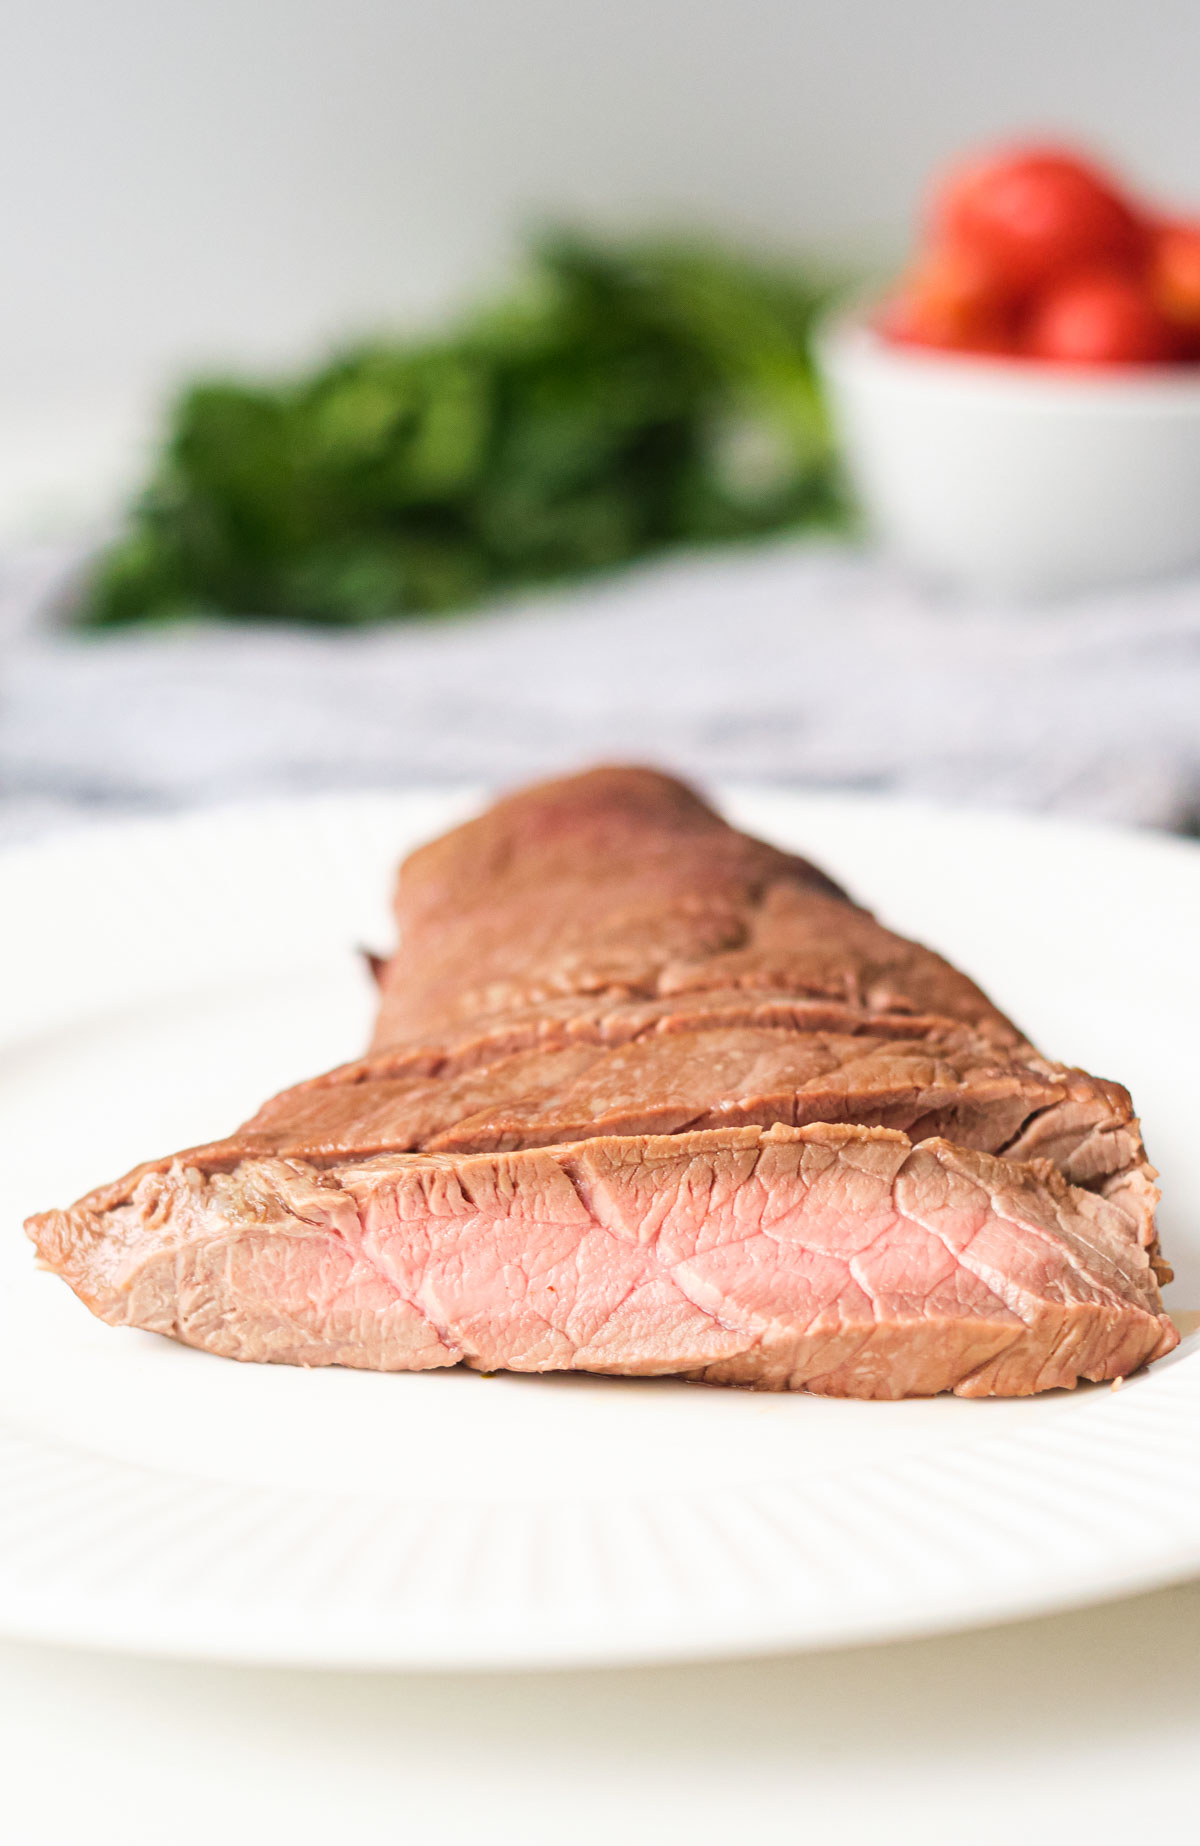 steak that has been reheated in air fryer and served on a white plate